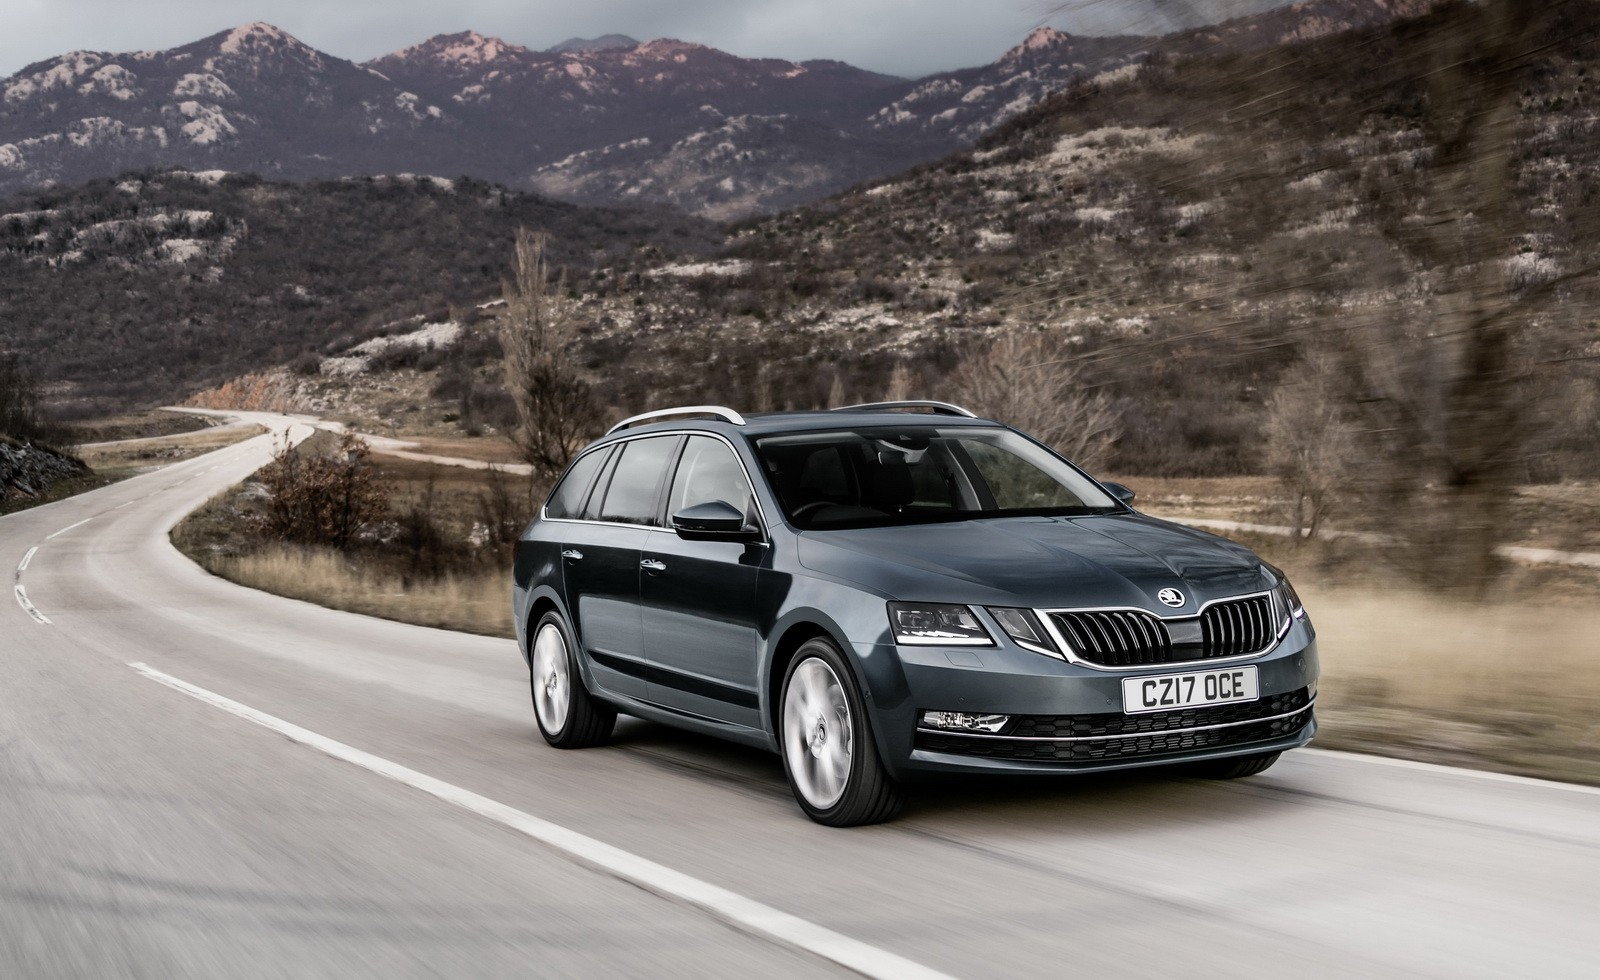 2017 skoda octavia facelift 1 5 tsi specs and pricing. Black Bedroom Furniture Sets. Home Design Ideas